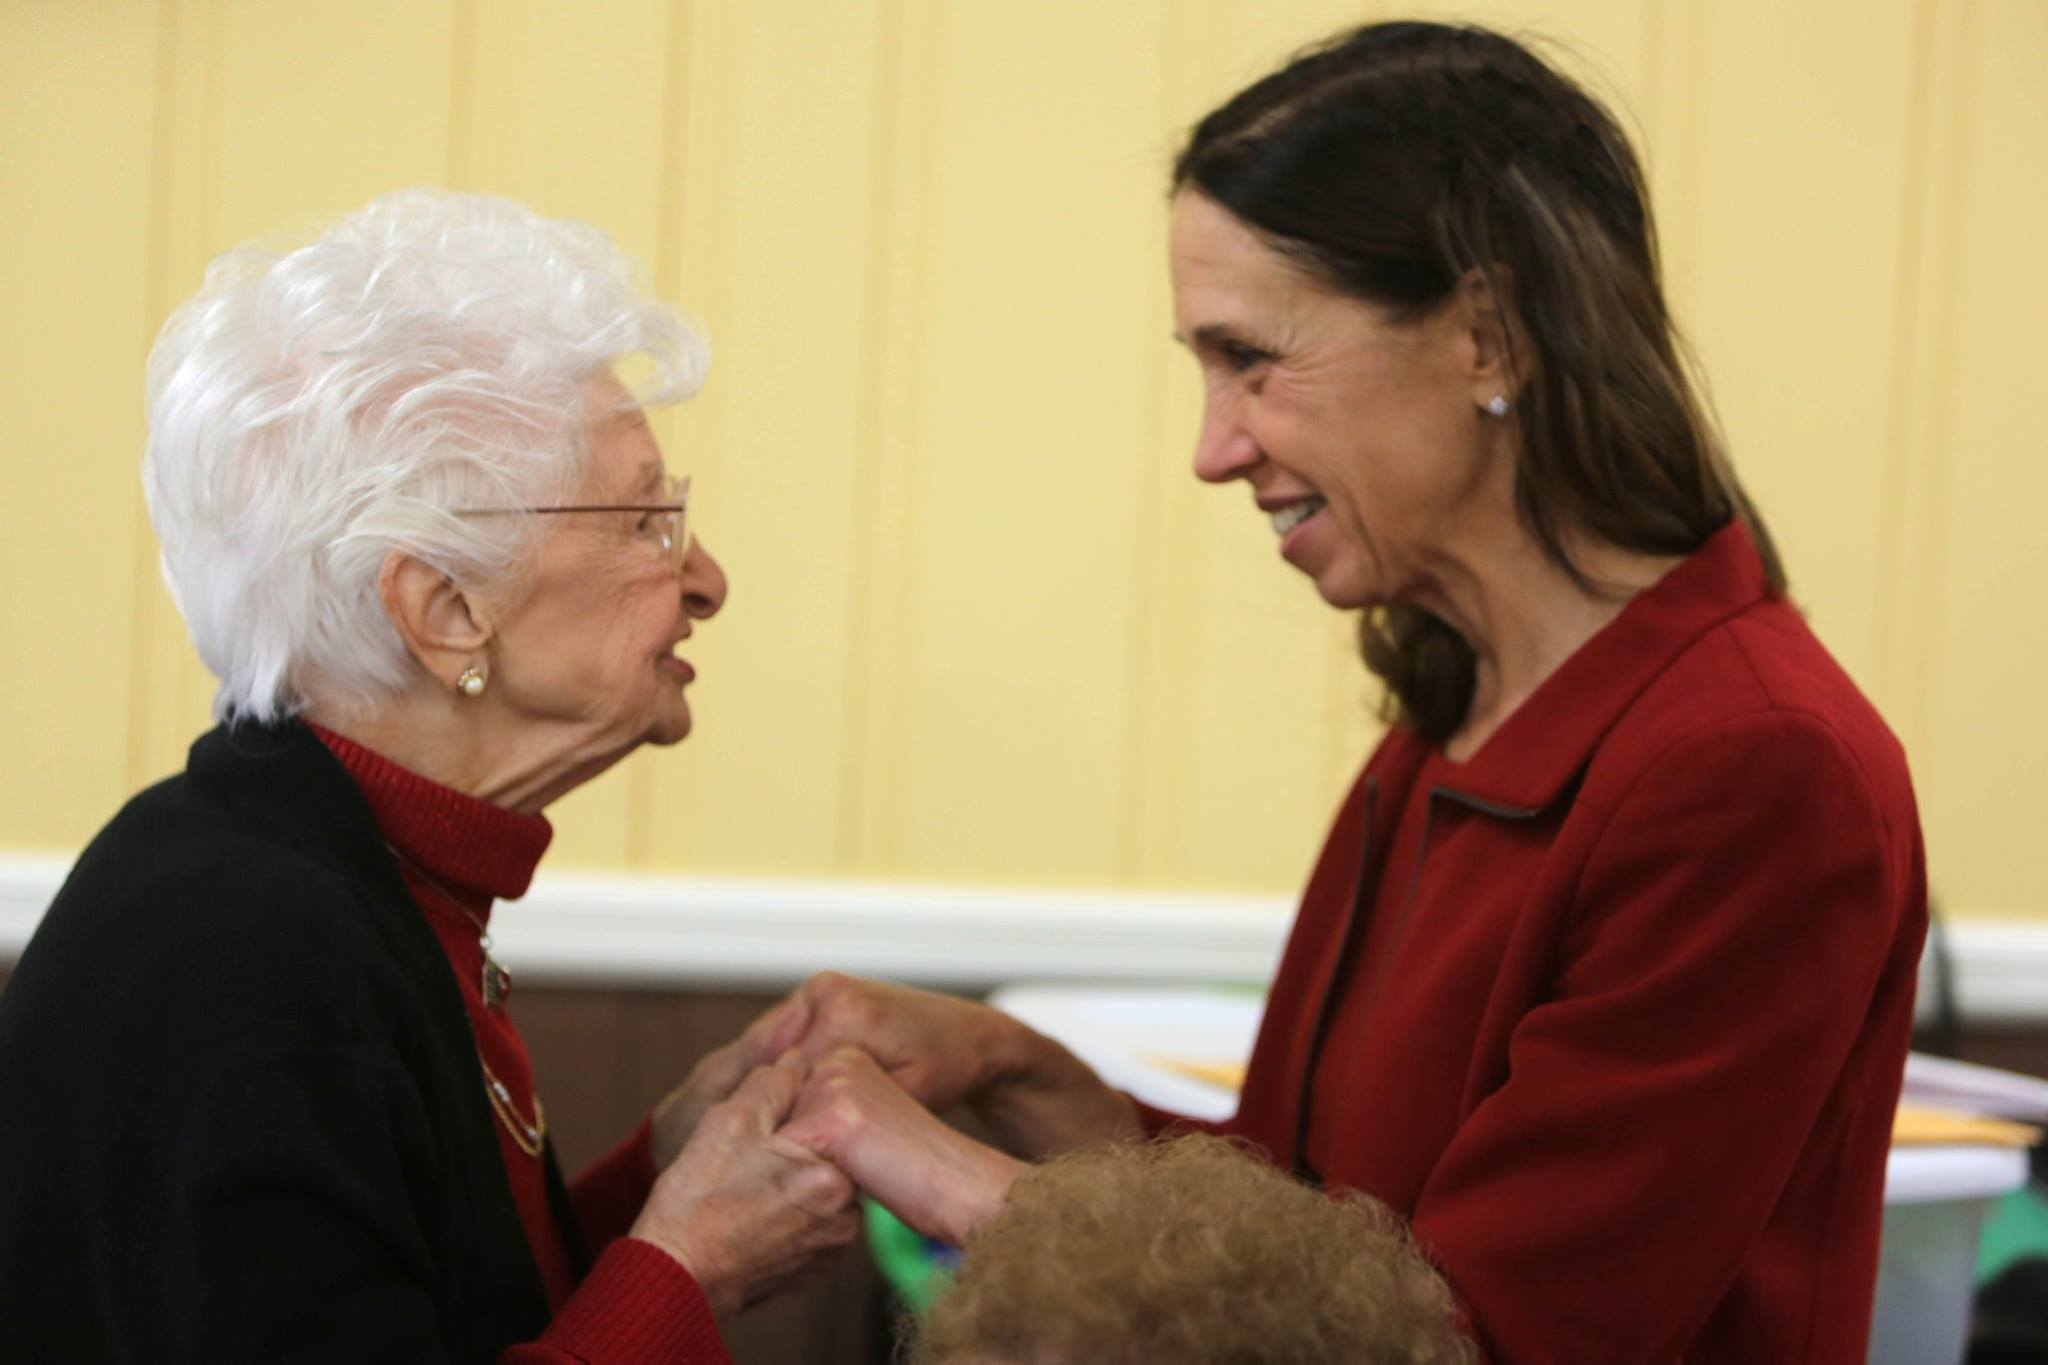 Assemblywoman Amy Paulin interacting with a Tuckahoe senior while giving out holiday cookies.